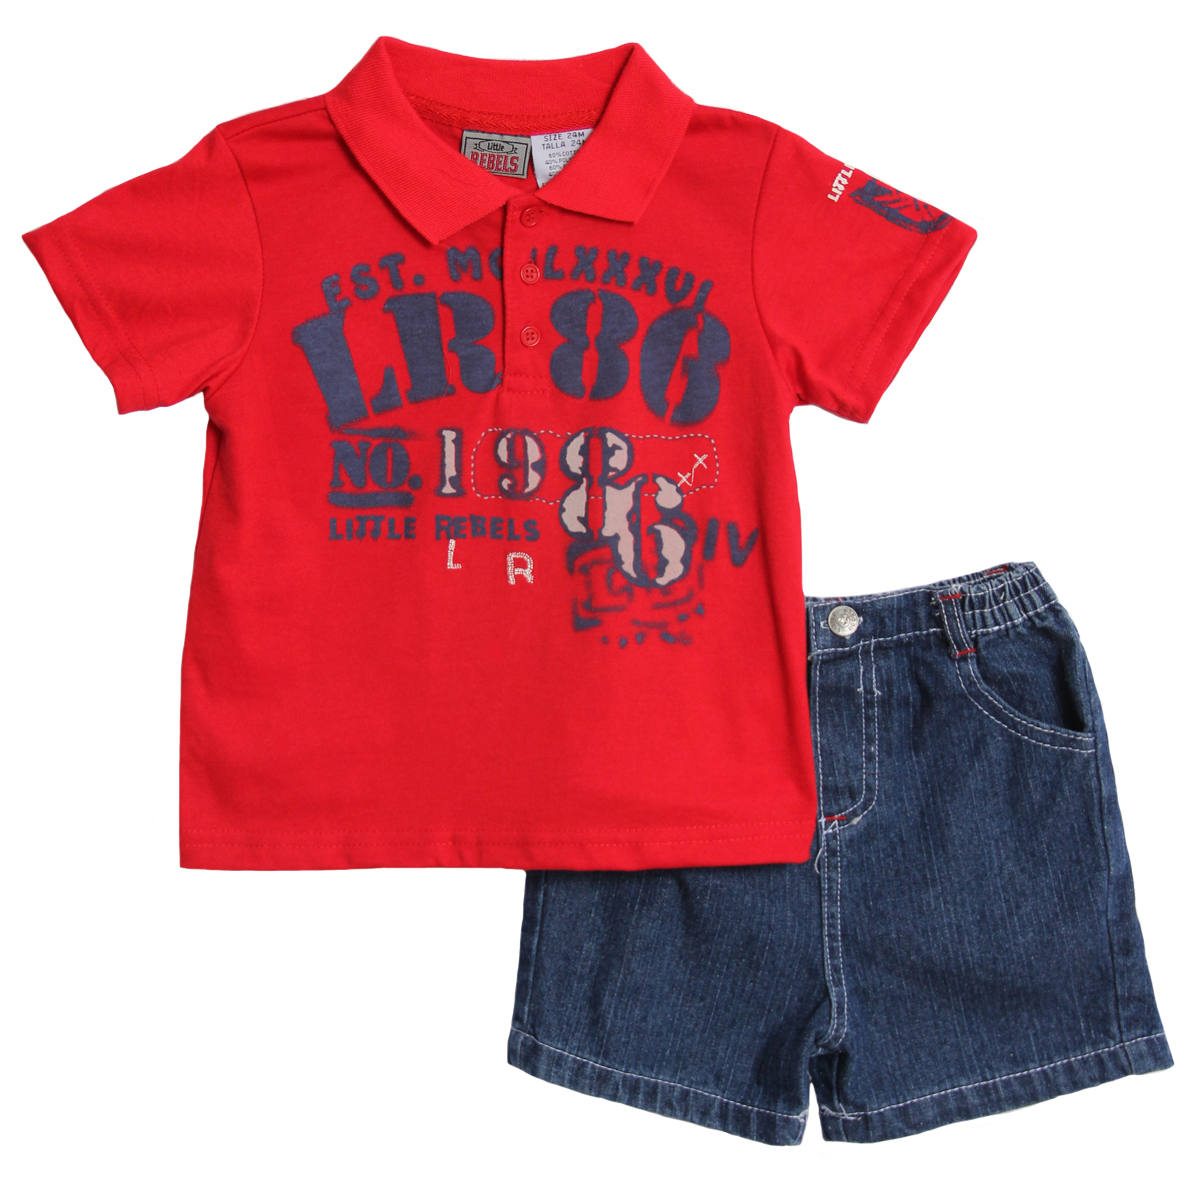 Little Rebels Infant Baby Boys 2 Piece Red Navy Polo Shirt Denim Jean Shorts Set at Sears.com